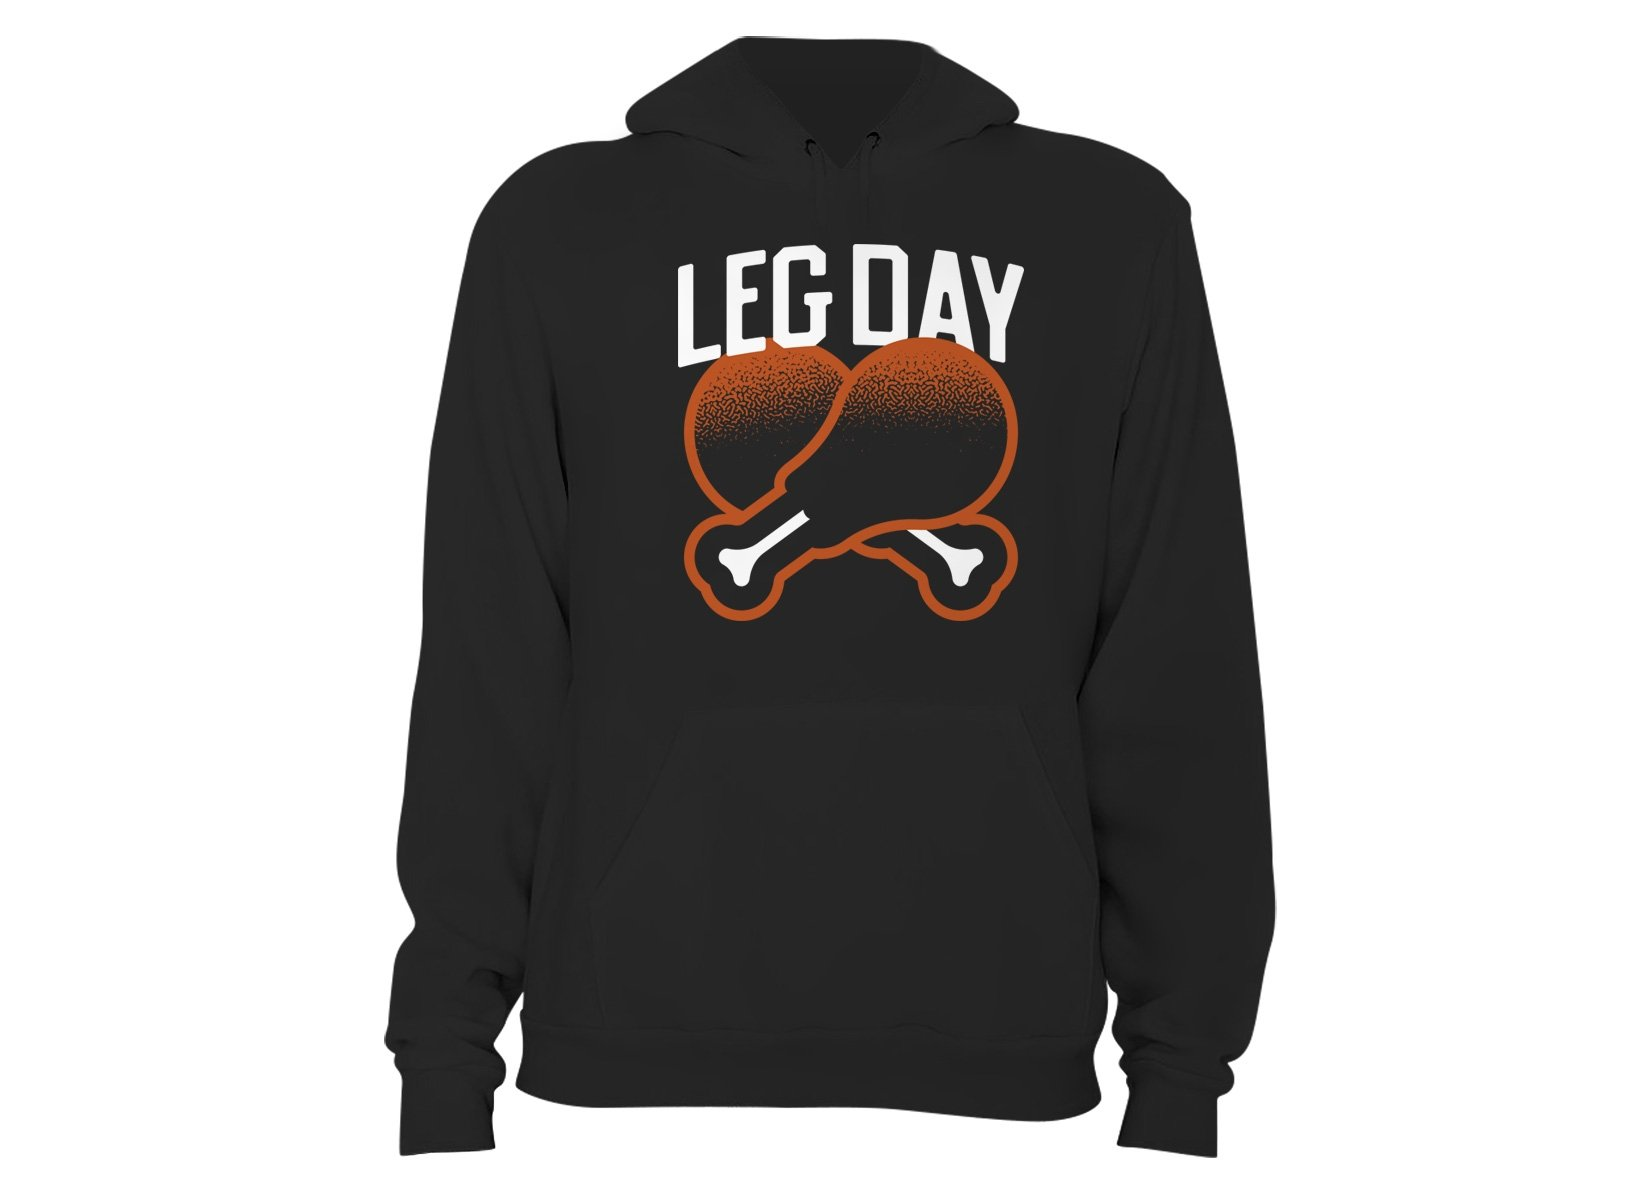 Leg Day on Hoodie